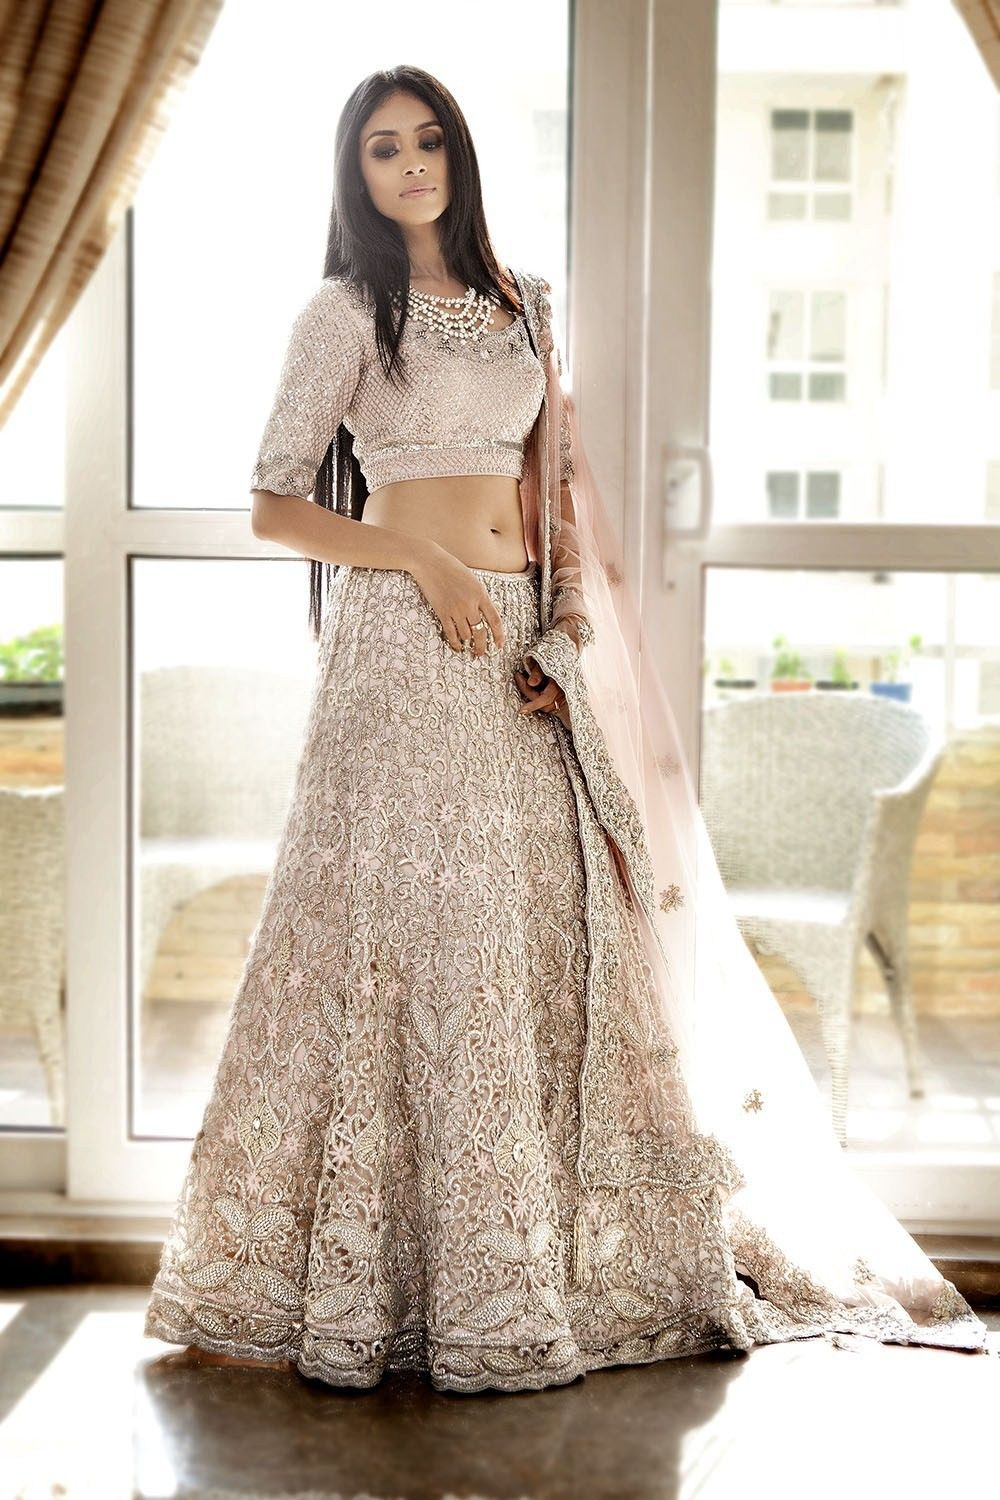 5f408192b5 Stunning white beaded and jeweled Indian wedding gown. | Indian ...